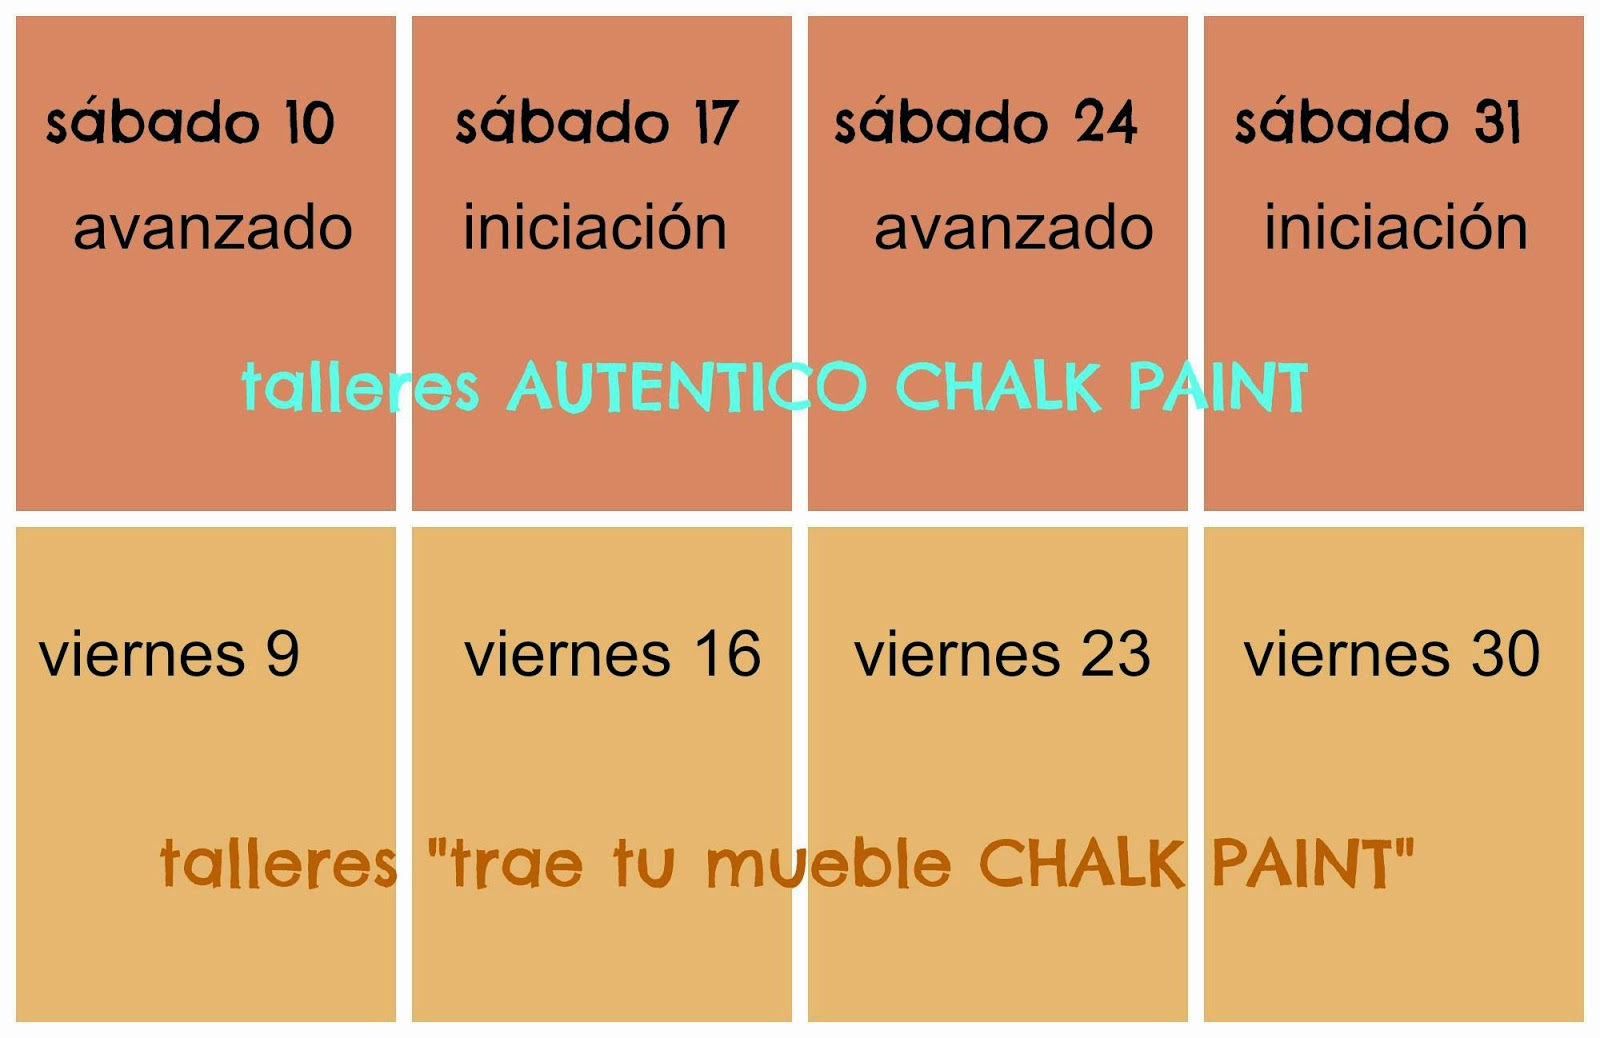 Talleres chalk paint madrid por tintura